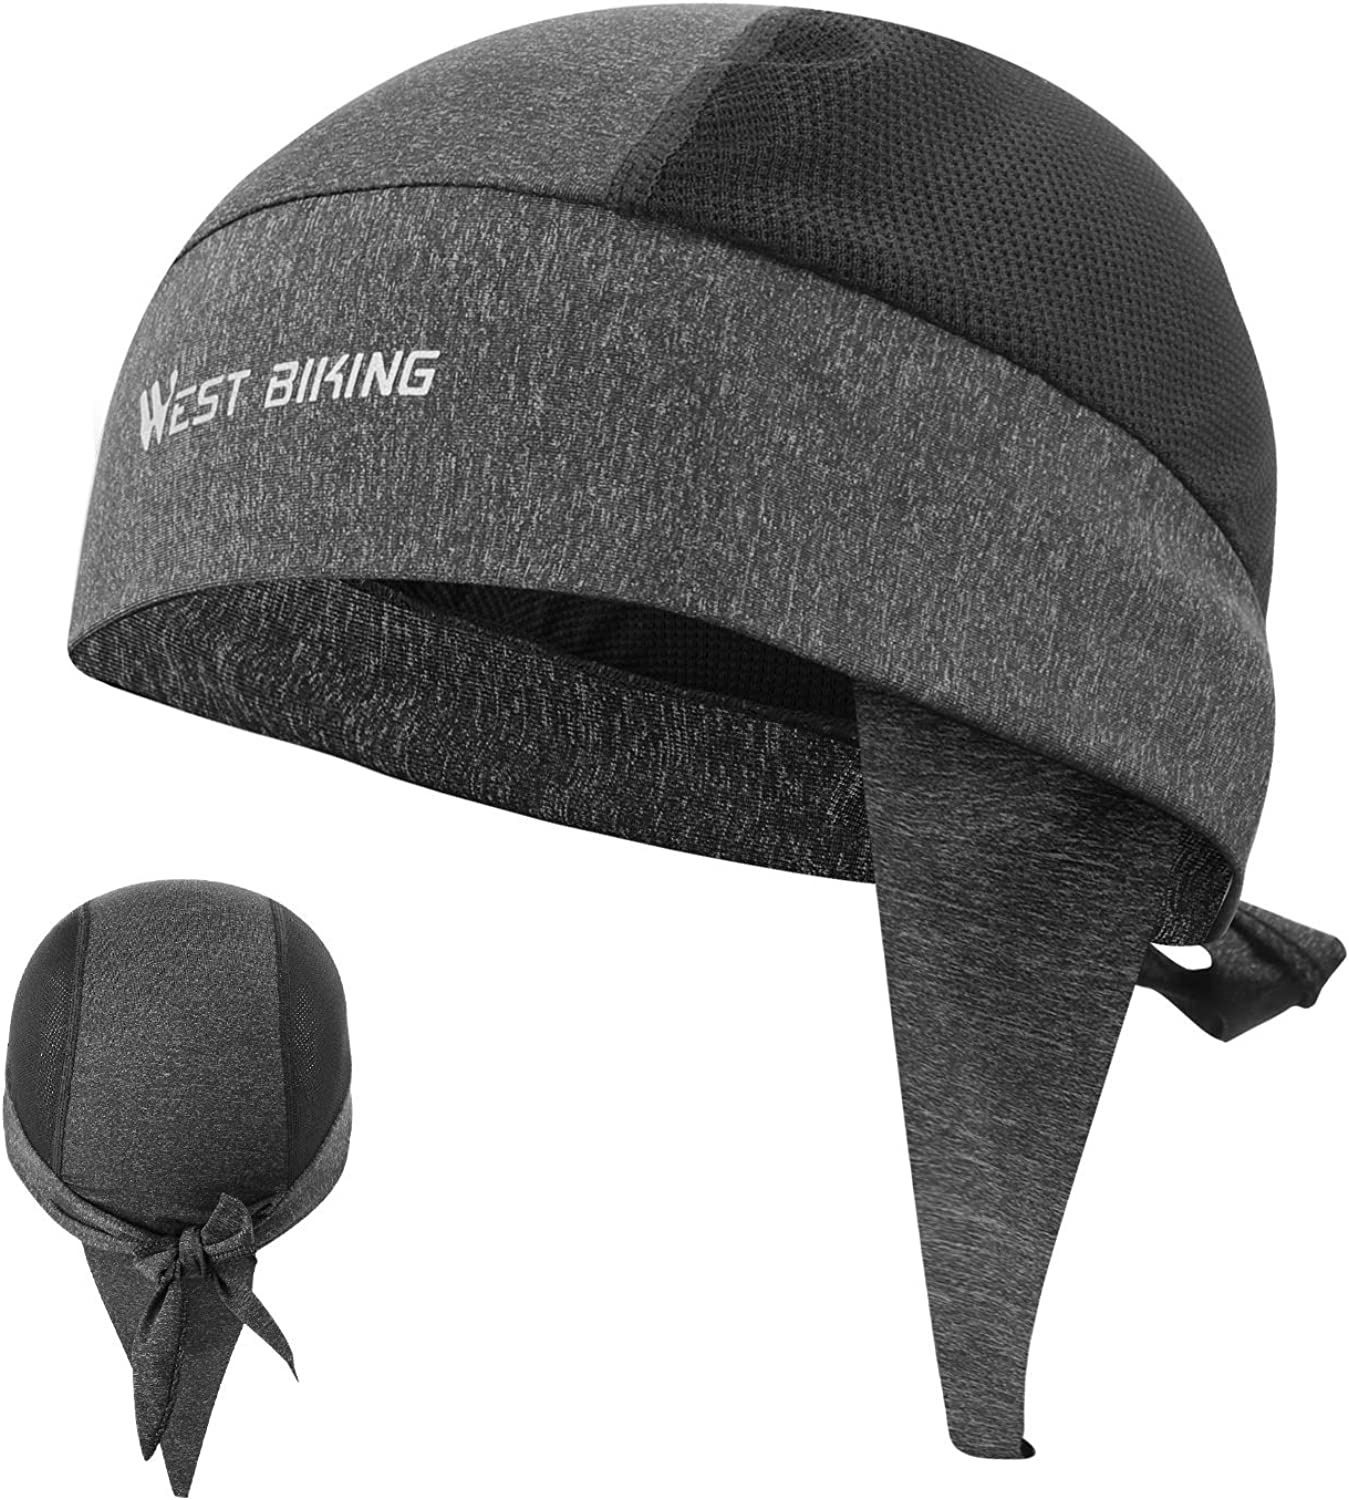 Sweat Wicking Doo Dew Rags Skull Cap Beanie for Men Cycling Fishing Motorcycle